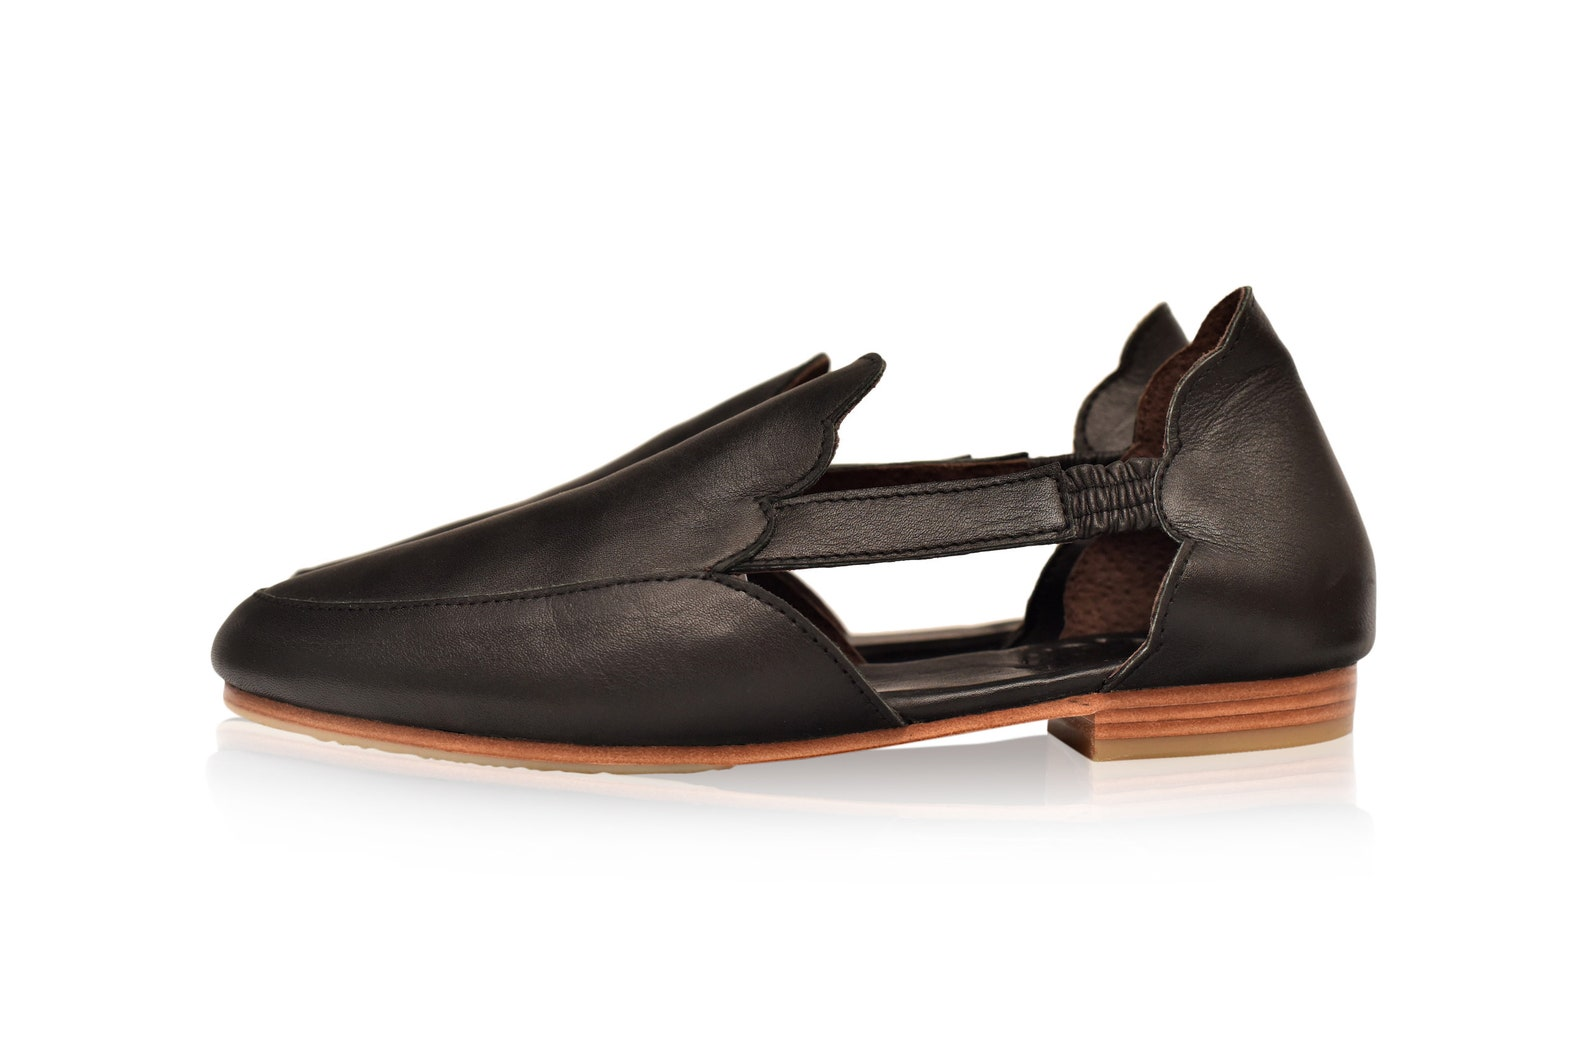 amalfi. black leather flats / leather ballet flats / leather shoes handmade / boho leather sandals. sizes 35-43 available in oth